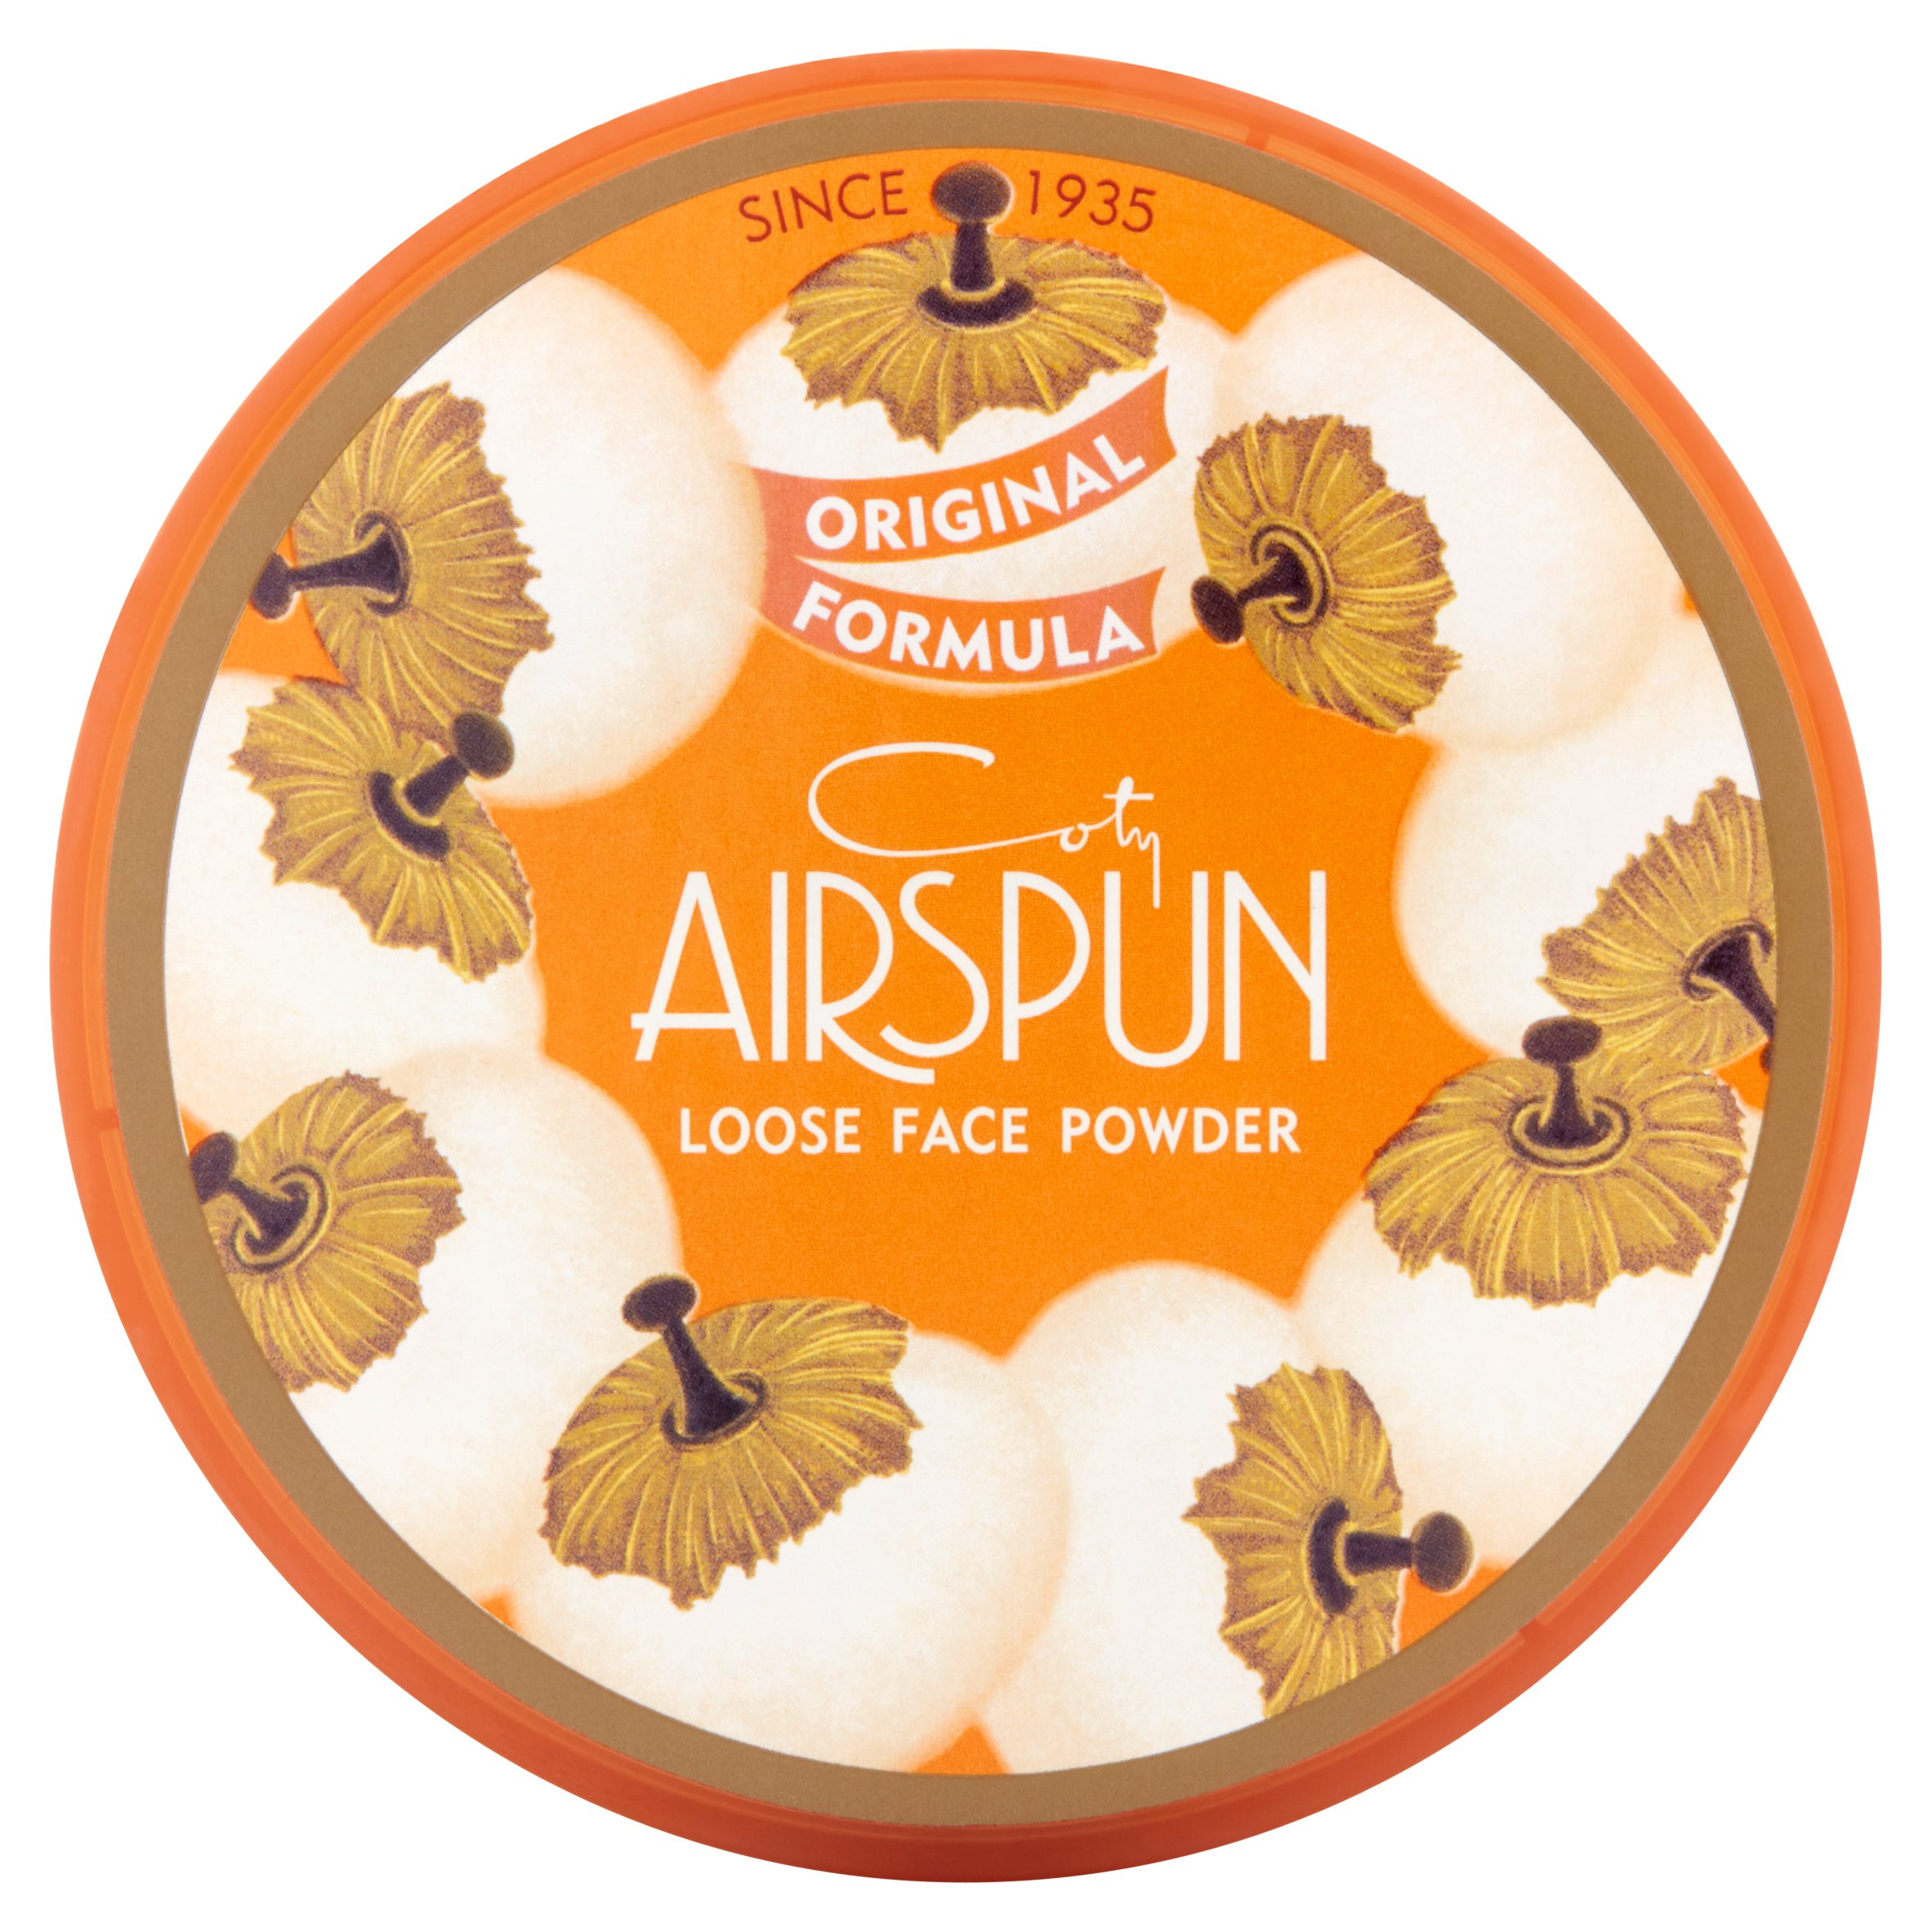 Image result for coty airspun loose face powder